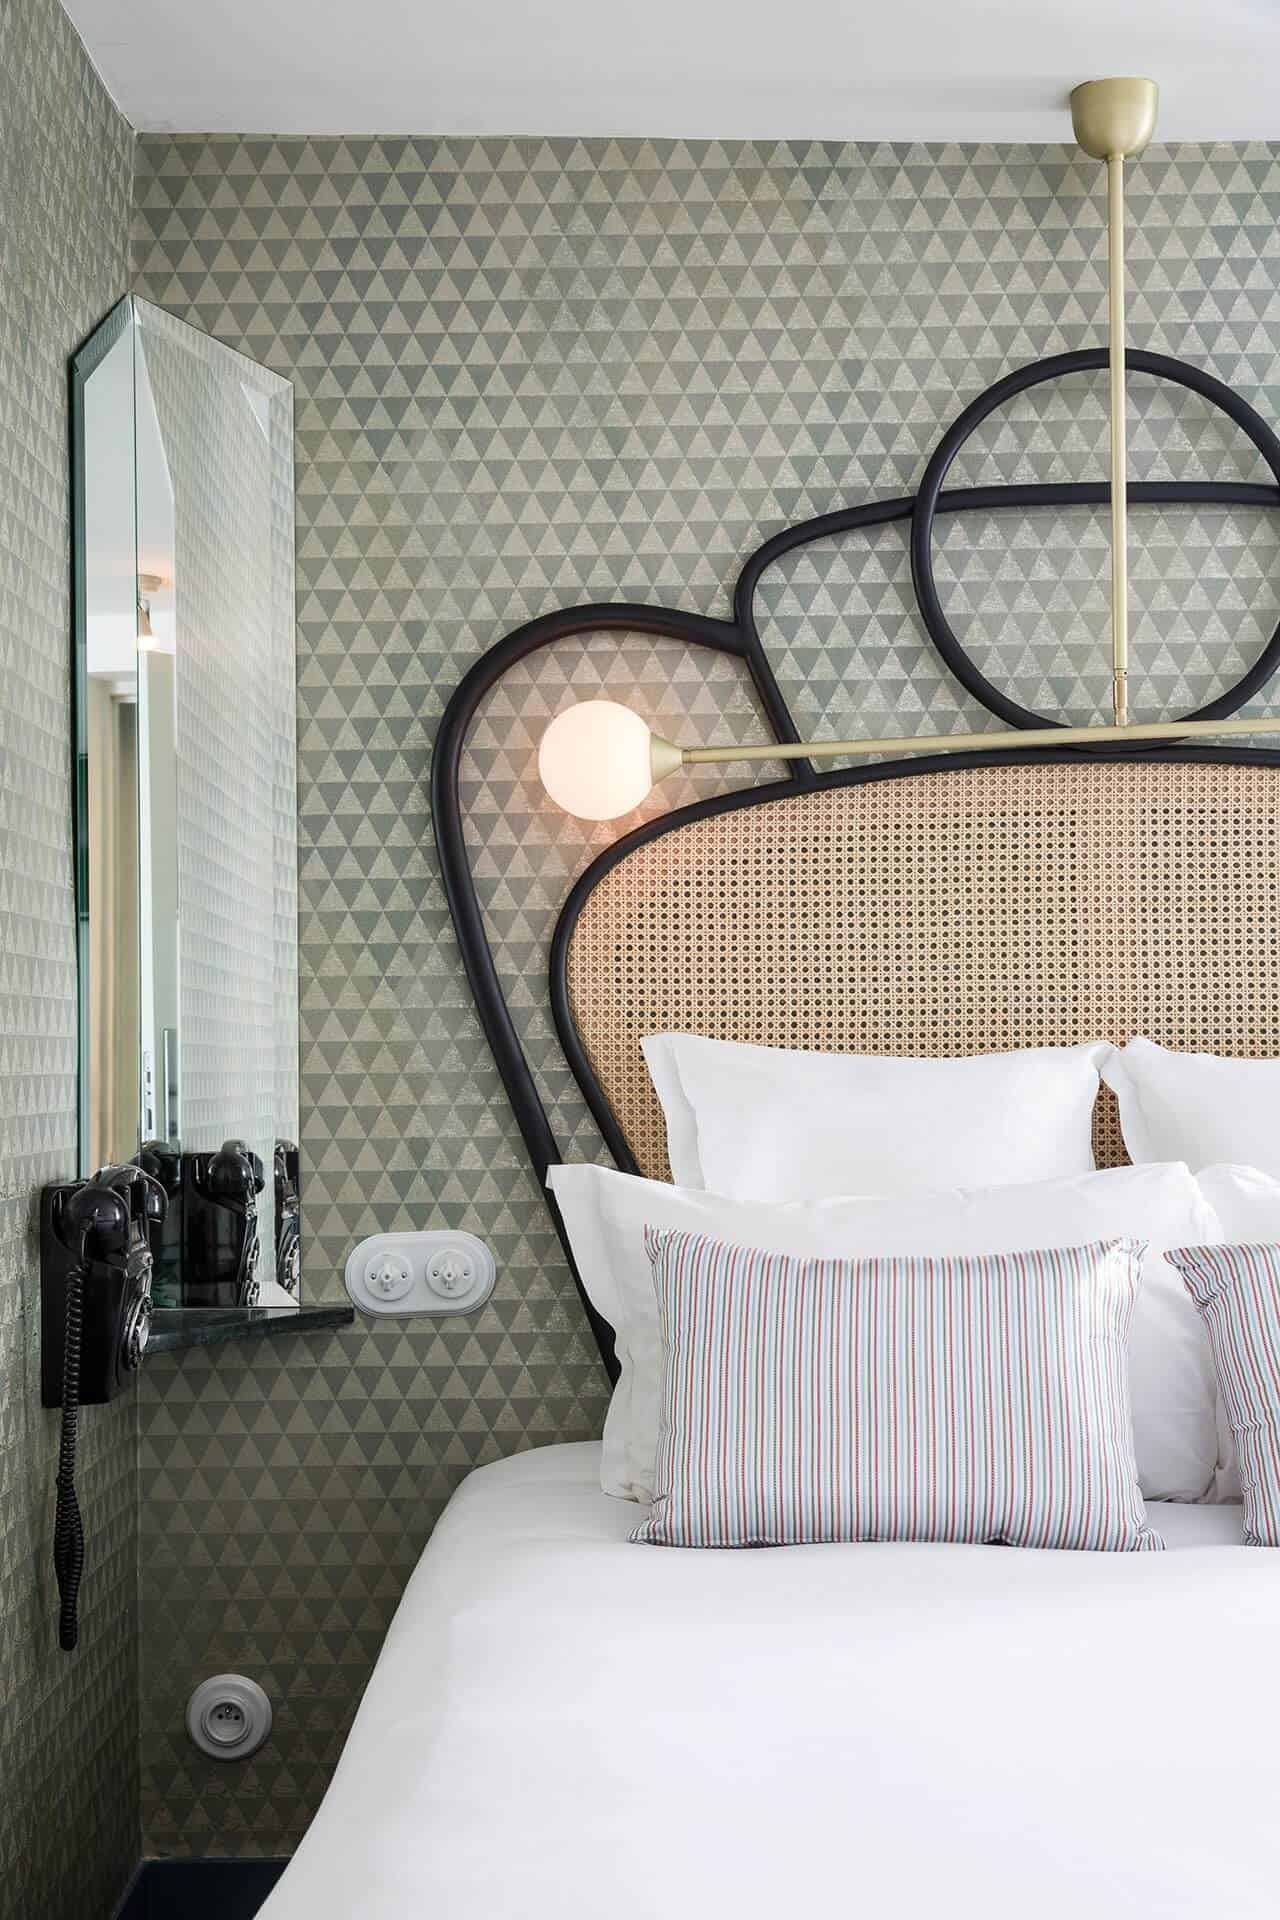 Brady Tolbert Blog Hotel Panache Boutique Hotel Glam French Paris Visit Vacation Modern Design 12